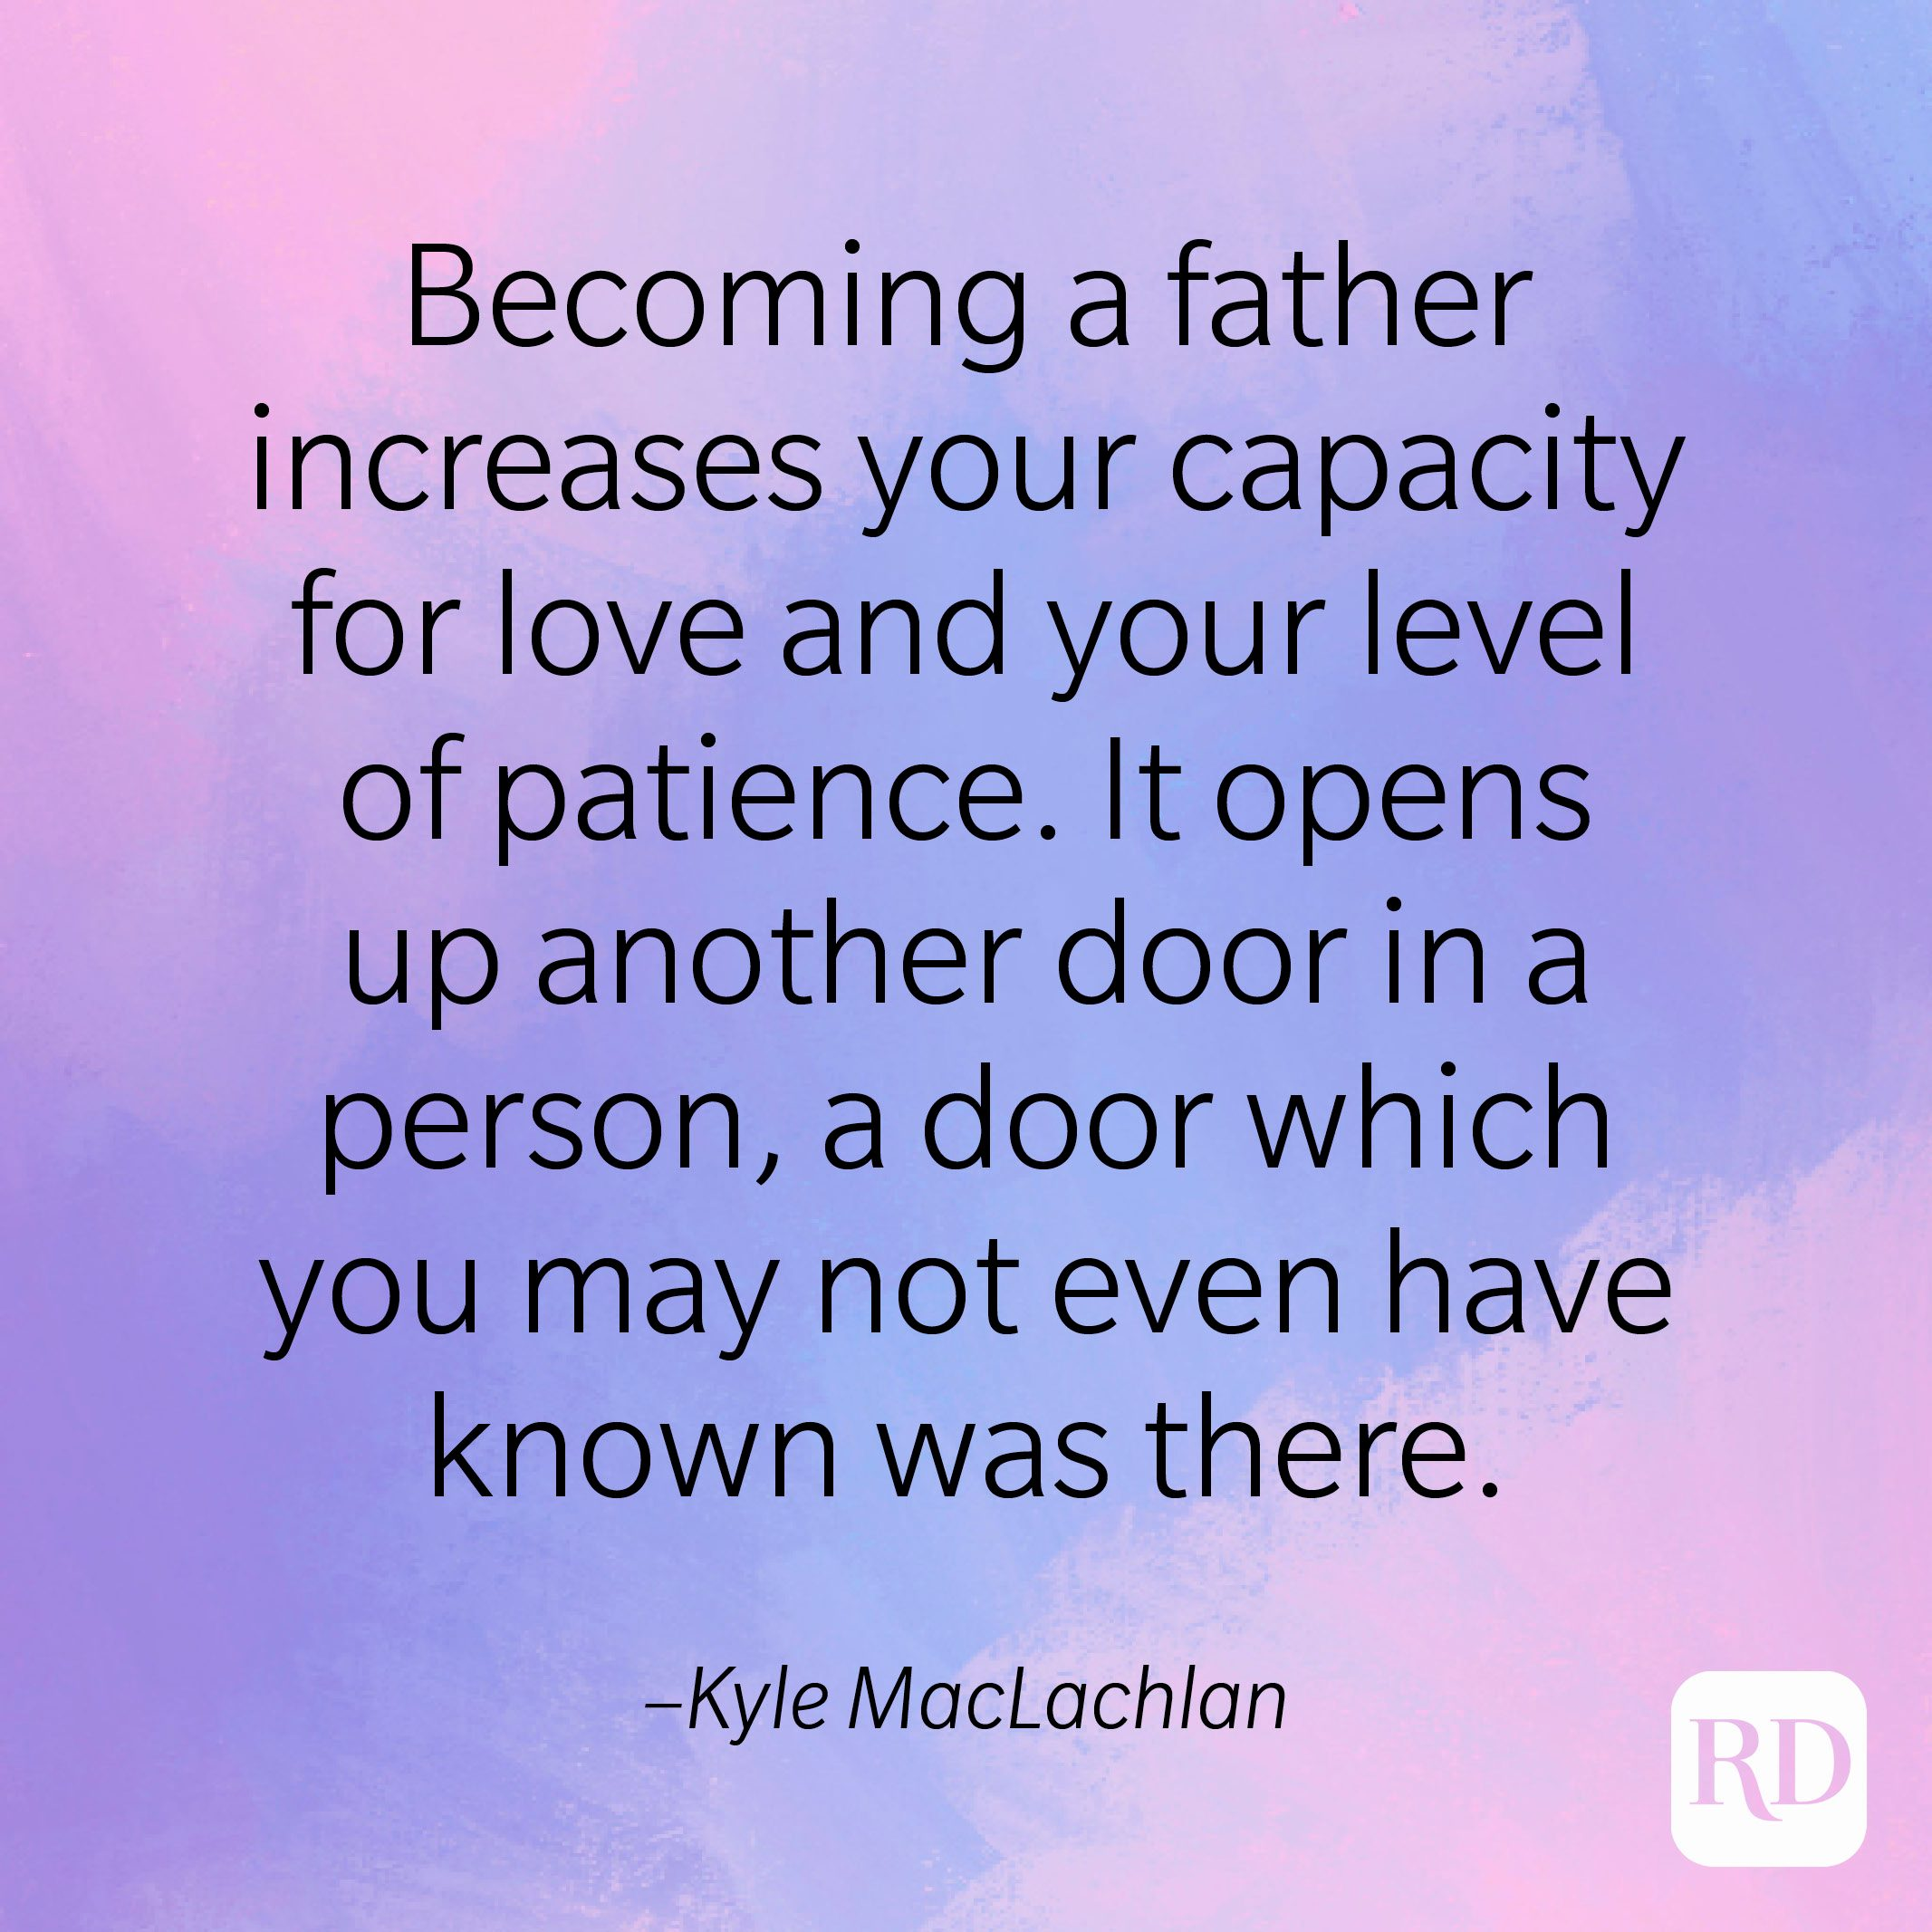 """""""Becoming a father increases your capacity for love and your level of patience. It opens up another door in a person, a door which you may not even have known was there."""" –Kyle MacLachlan"""